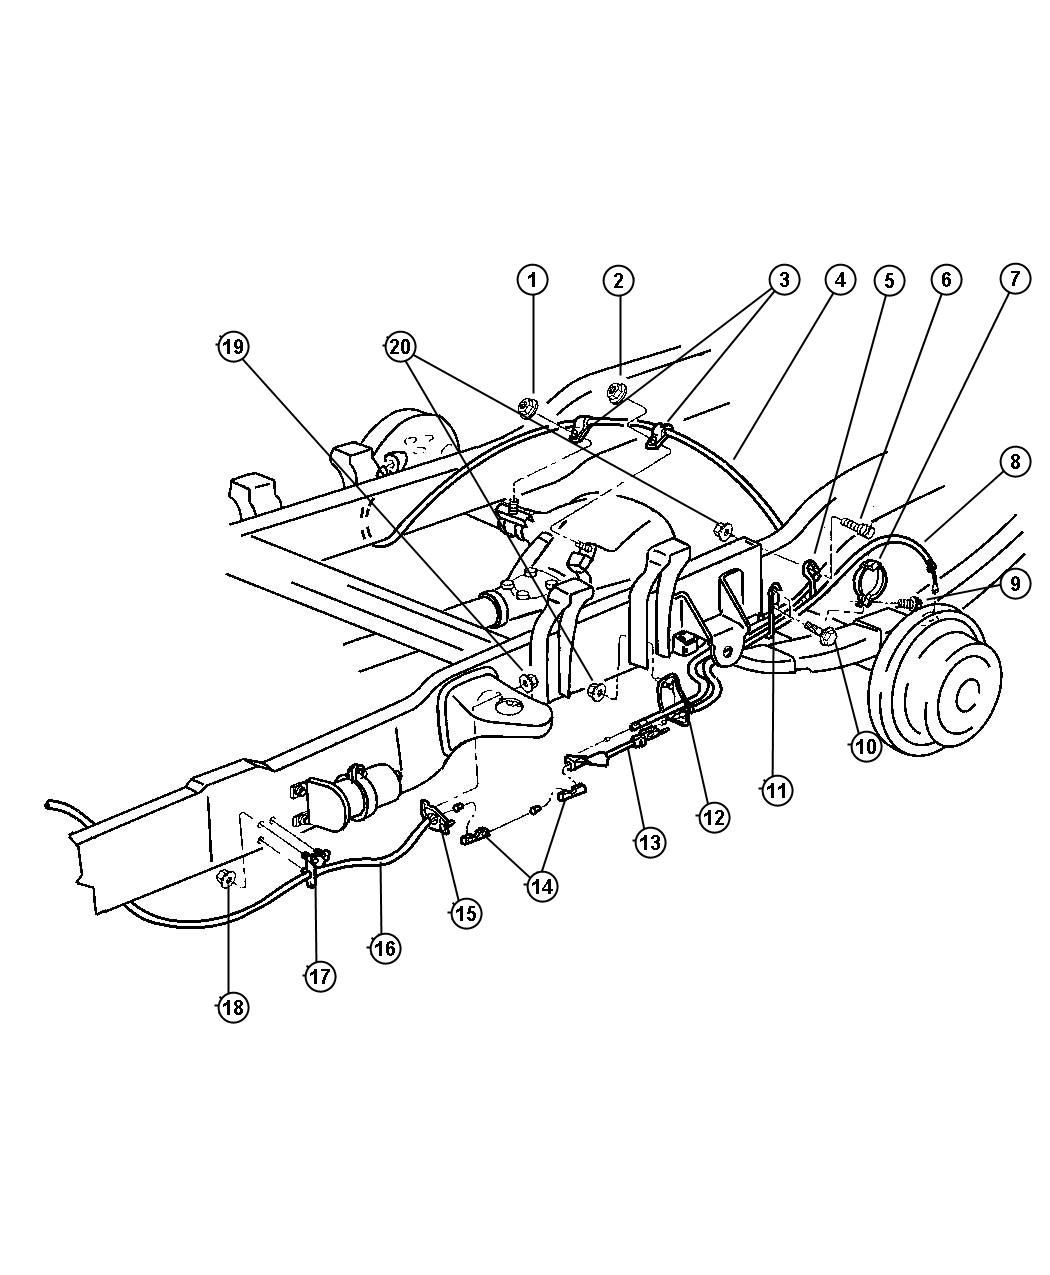 1999 Dodge 2500 Brake Line Diagram Best Secret Wiring 2001 Vw Eurovan Ram 1500 Pictures To Pin On 99